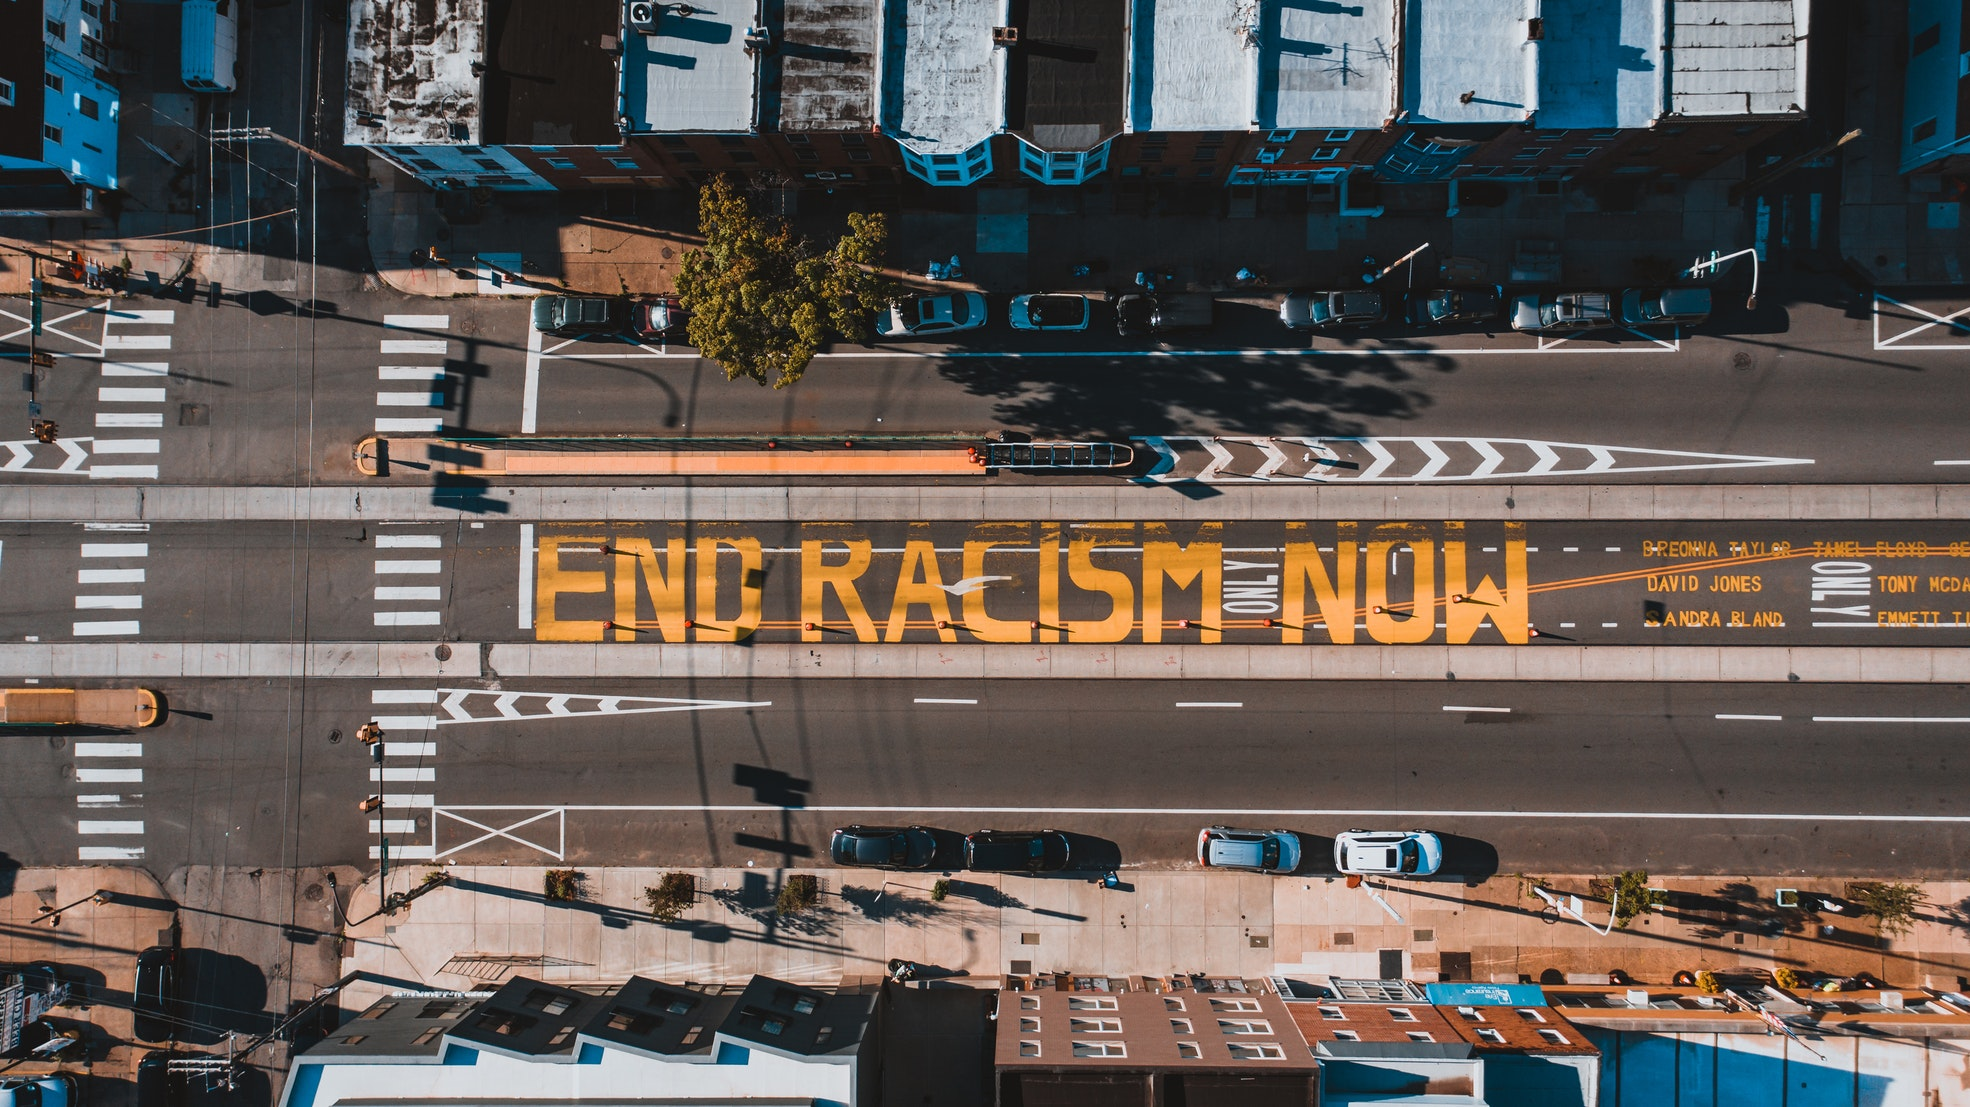 bird's eye shot of social justice in business text on road saying end racism now